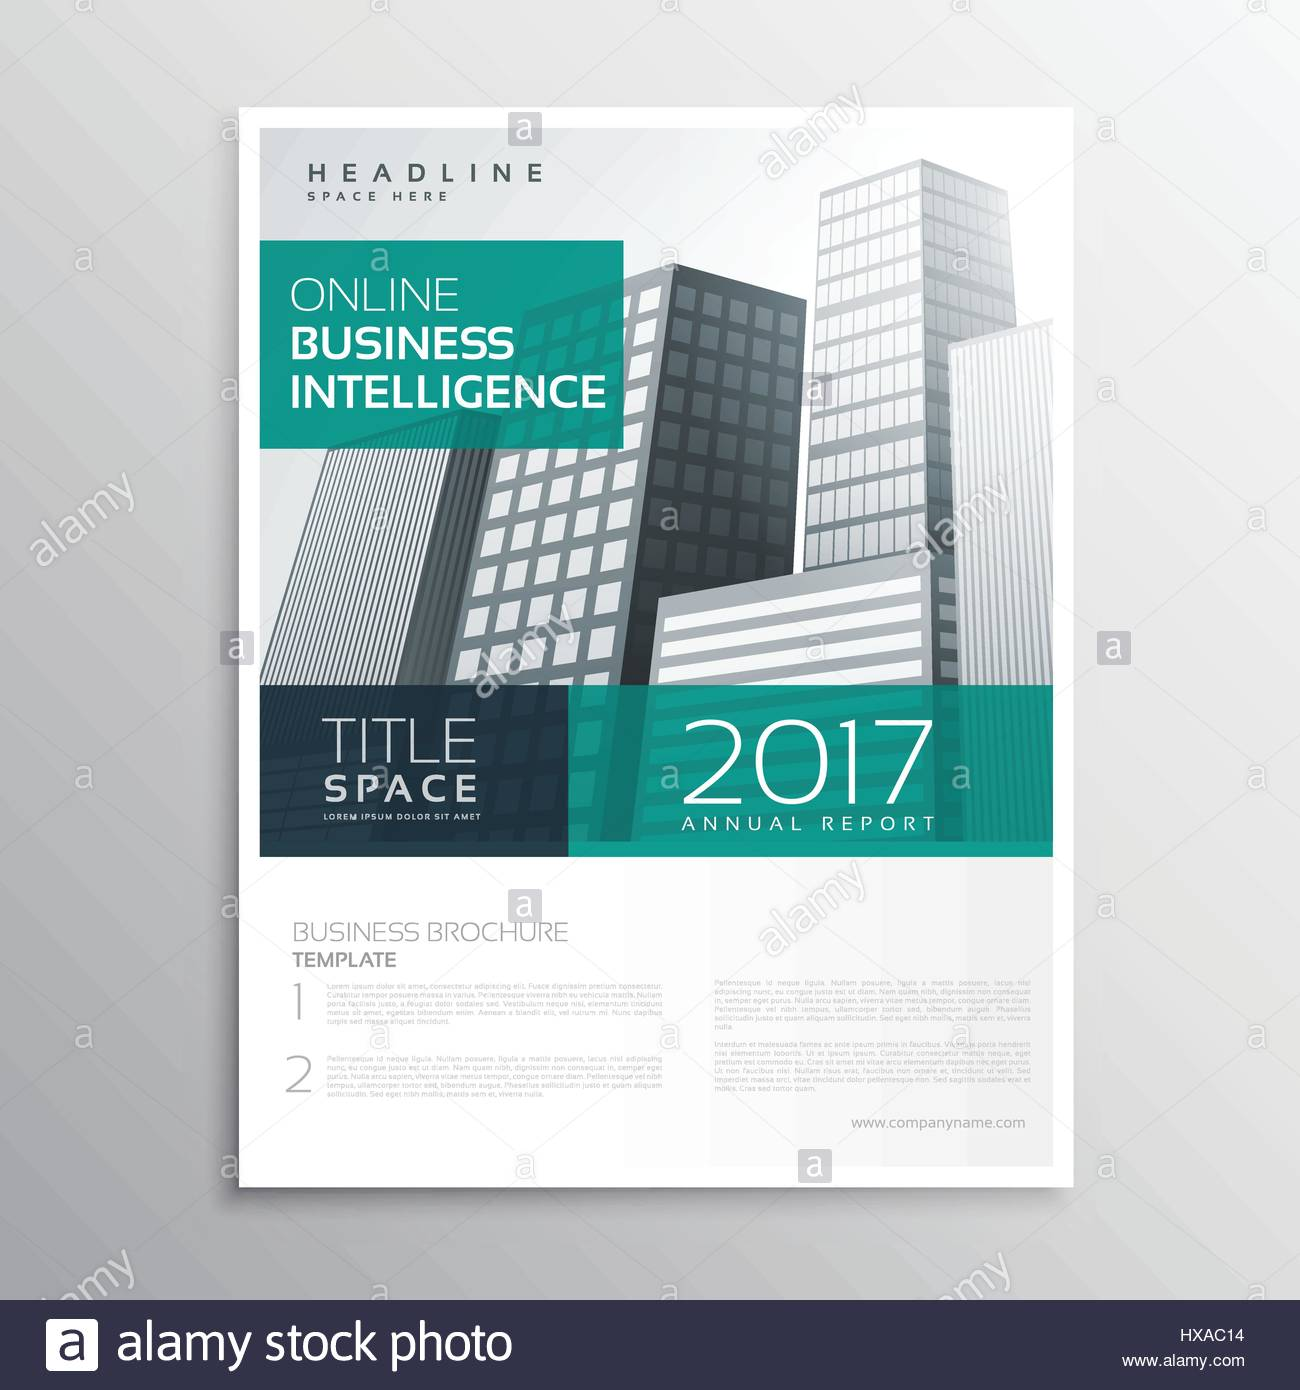 company business brochure template design with buildings in a4 size